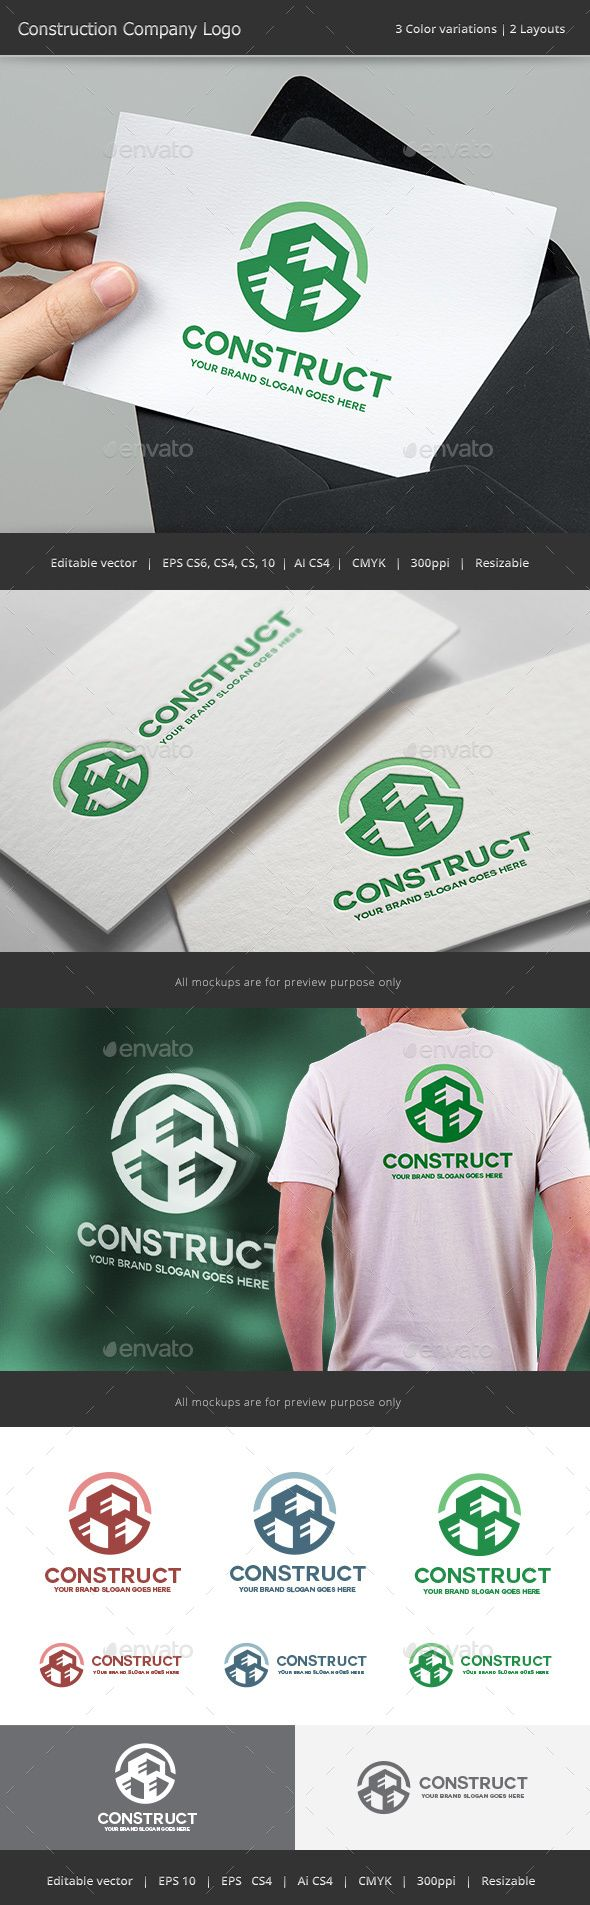 Construction Company  Logo Design Template Download: http://graphicriver.net/item/construction-company-logo/14351846?s_rank=217?ref=nexion